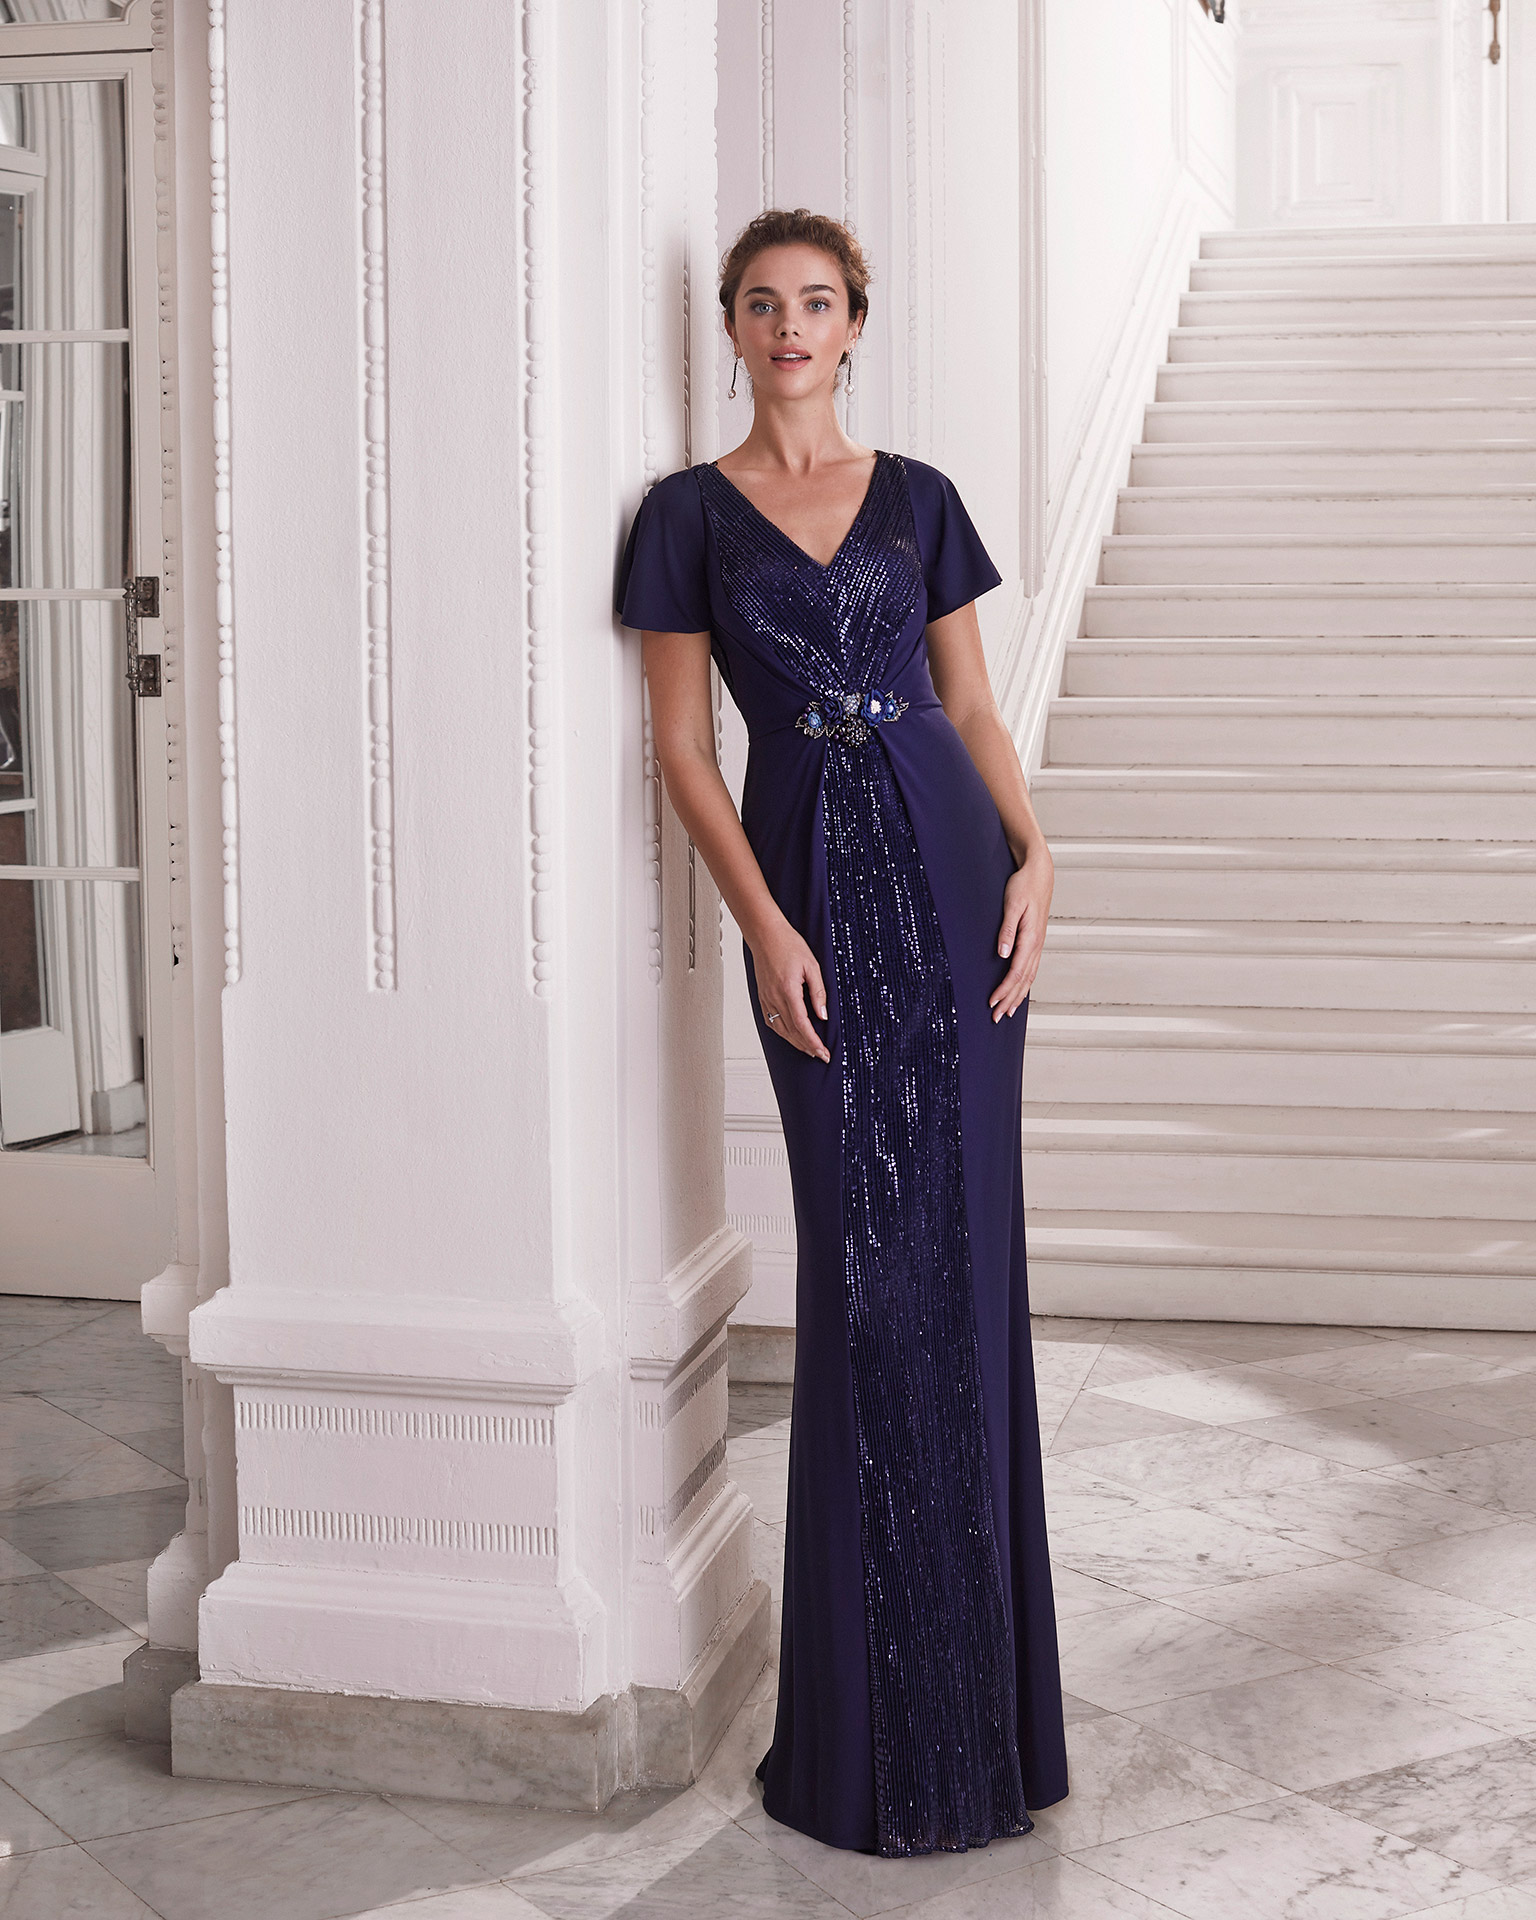 Cocktail dress in embroidered knit with sequins. V-neckline and closed back. Short cape sleeves, and beaded clasp in centre of dress at front. 2021 MARFIL BARCELONA Collection.